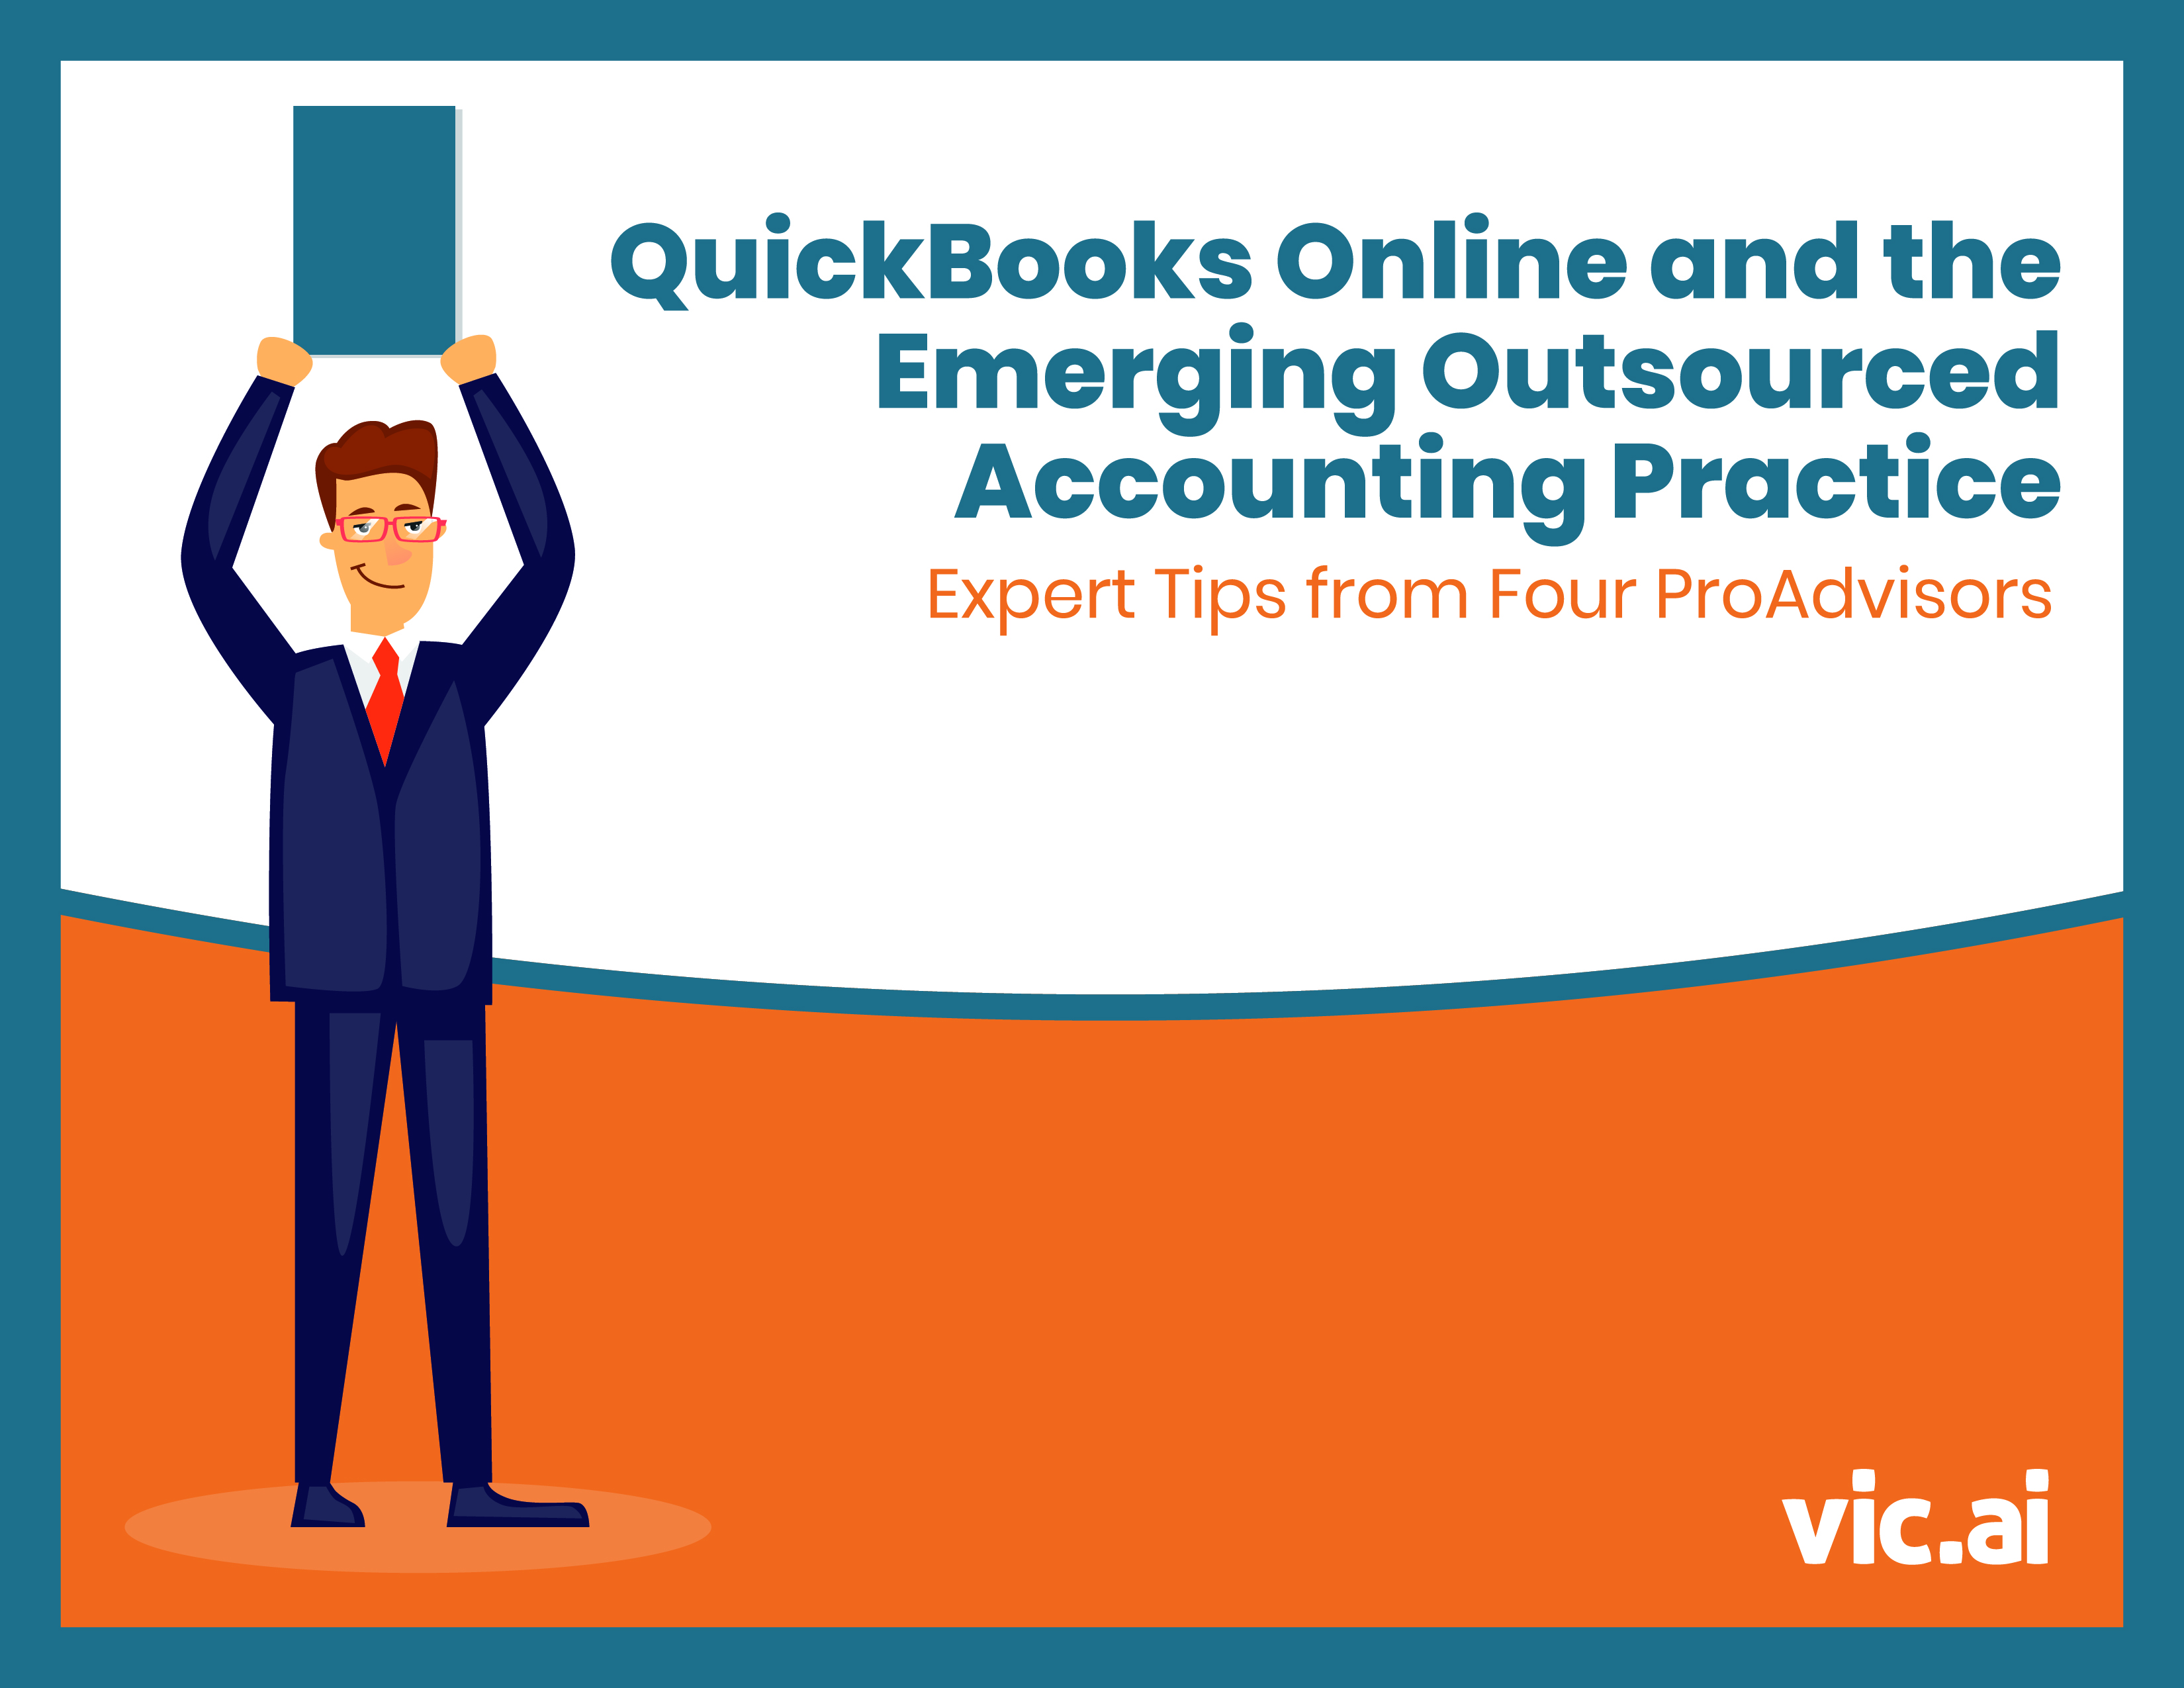 QuickBooks Online and the Emerging Outsourced Accounting Practice [Download Free eBook}